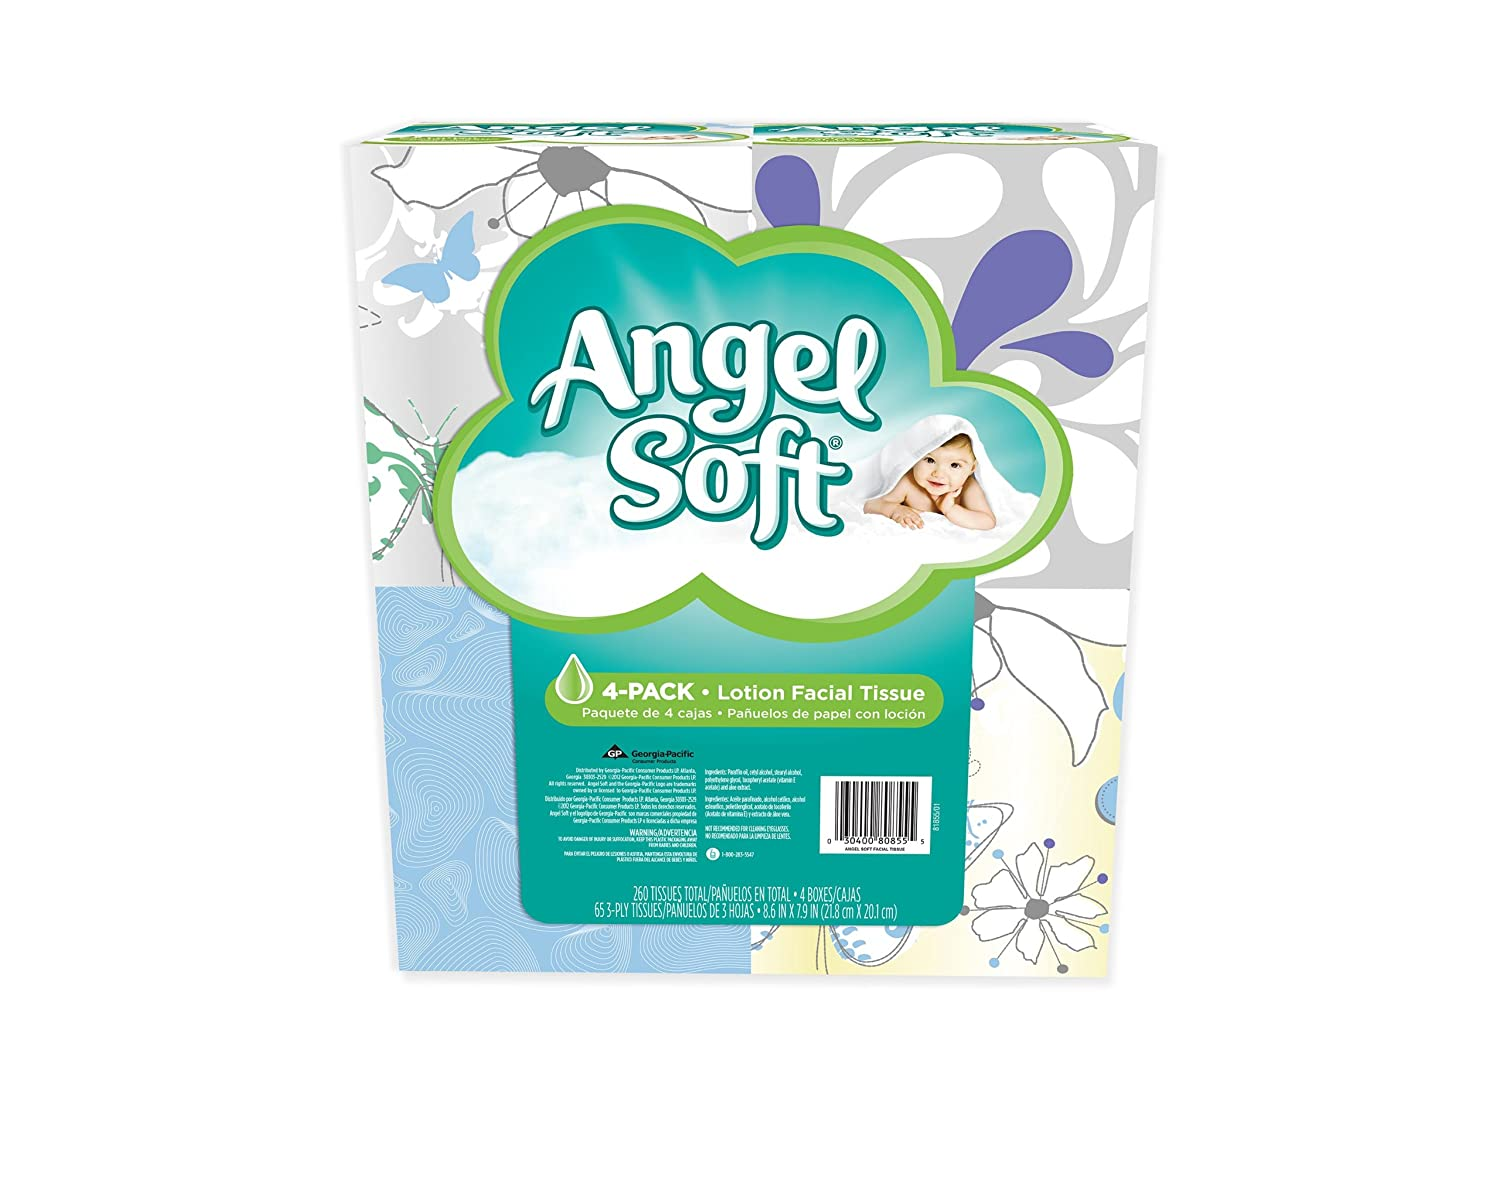 Amazon.com: Angel Soft Lotion Facial Tissue, 4-Boxes, White, 65ct. each (Packaging May Vary): Health & Personal Care